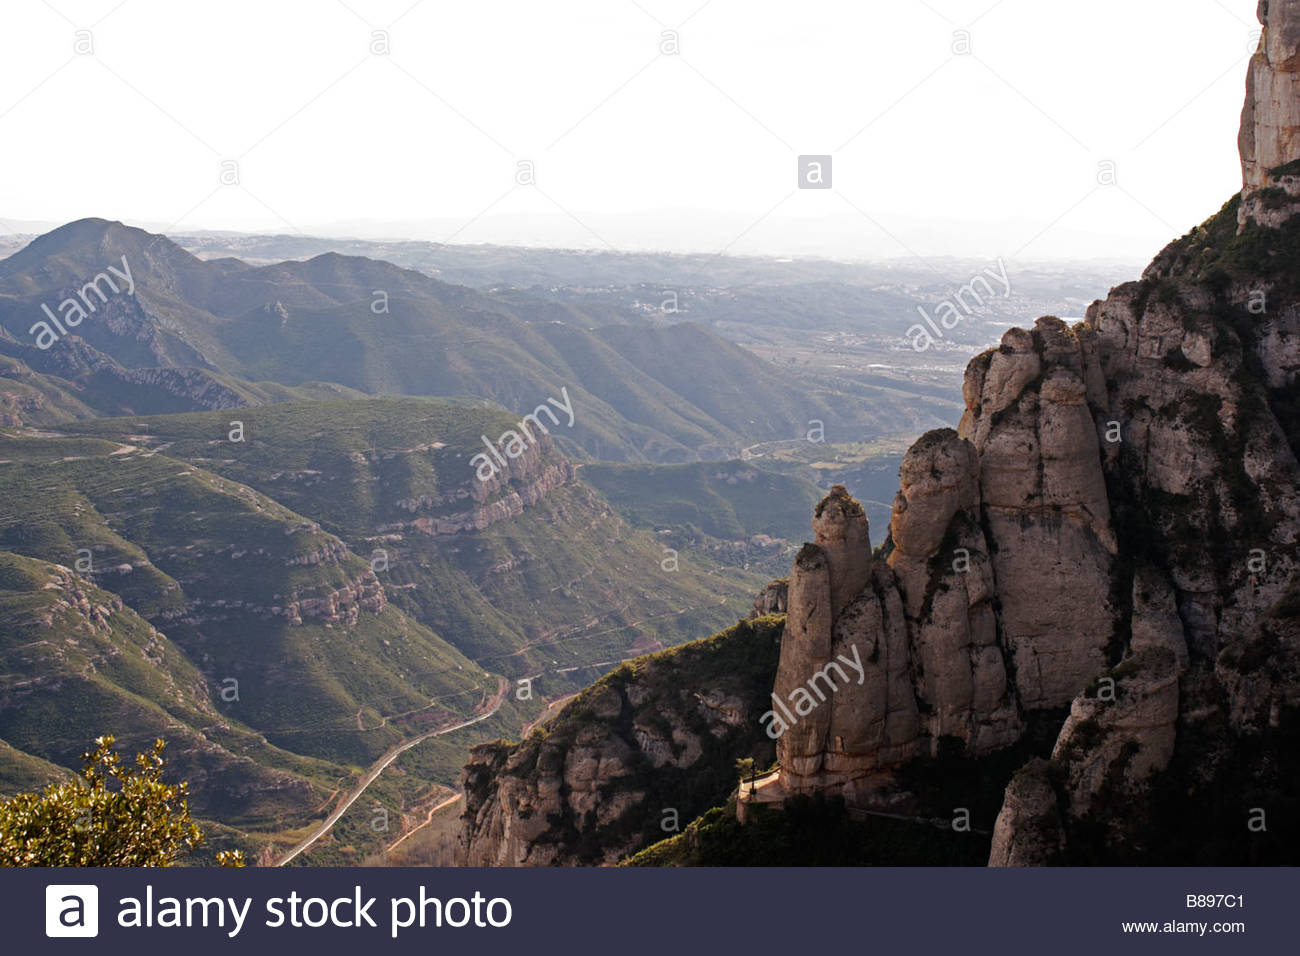 View from the Monastery of Montserrat in Barcelona Province, Catalonia Spain - Stock Image